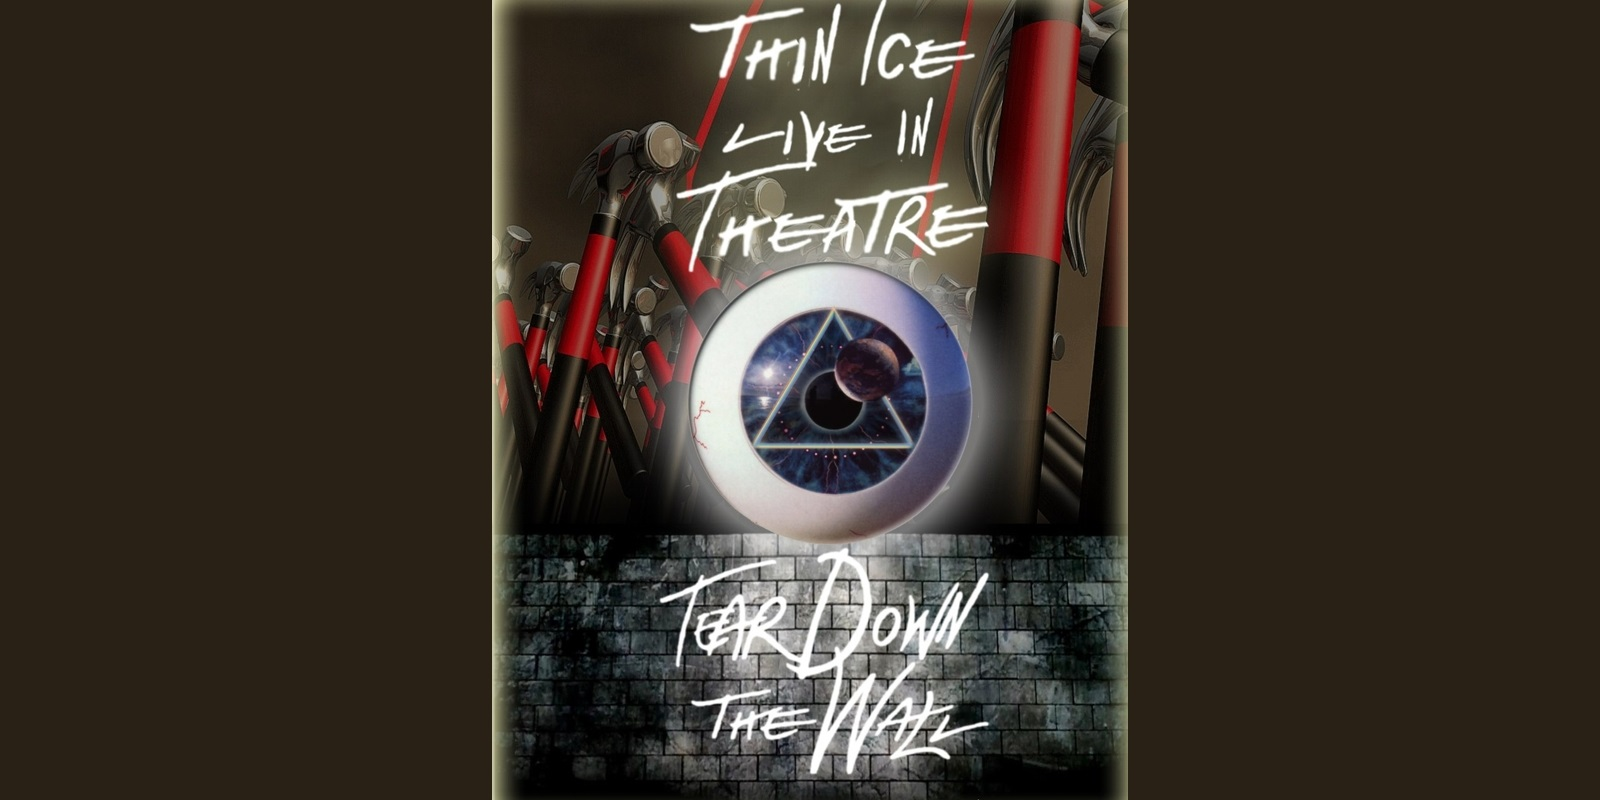 2013 – Thin Ice, live in theater